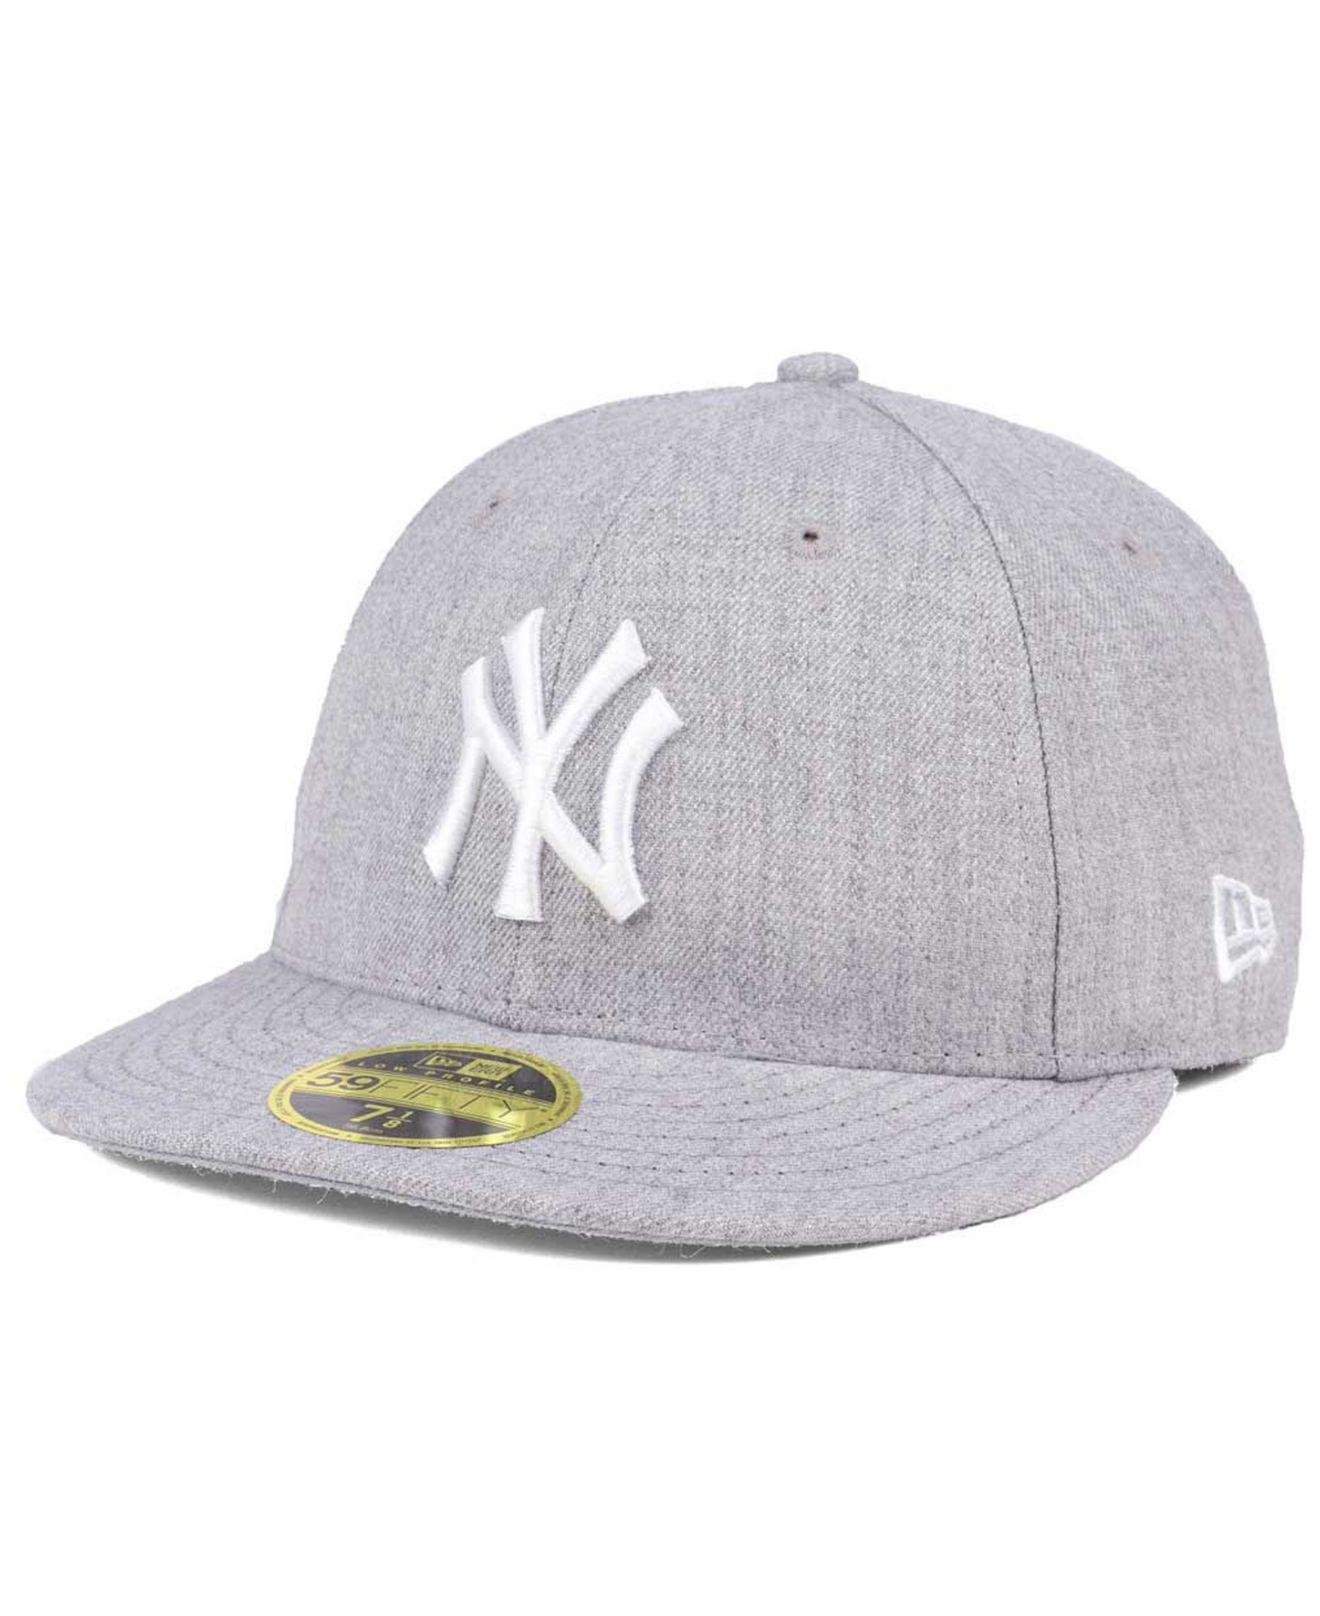 the best attitude 73f12 b8701 Lyst - KTZ New York Yankees Low Profile C-dub 59fifty Fitted Cap in ...